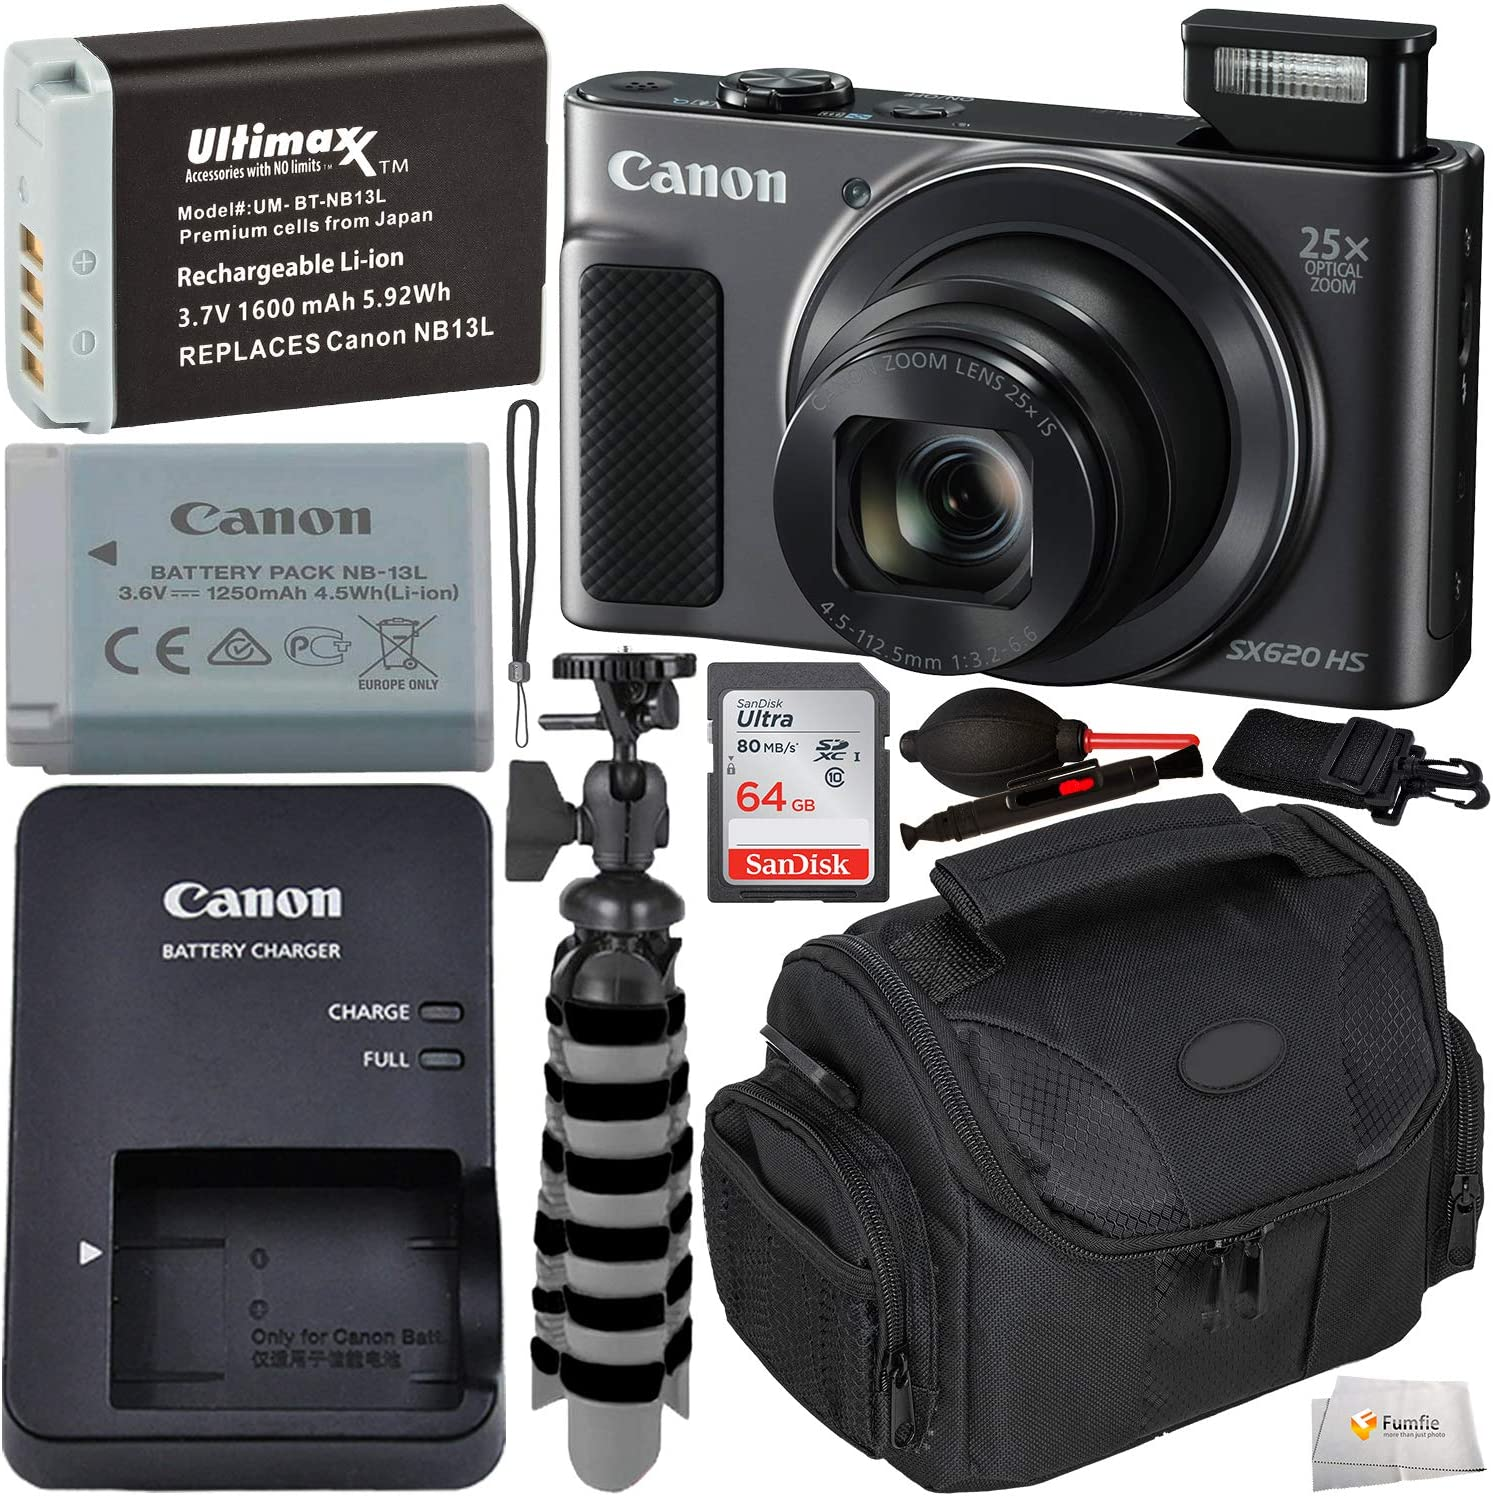 B07Q1DHZ93 Canon PowerShot SX620 HS Digital Camera (Black) with Starter Accessory Bundle - Includes: Spare Extended Life Battery, SanDisk 64GB SDXC Memory Card, Carrying Case, Flexible Gripster Tripod & More 81c5d7Sos-L.SL1500_